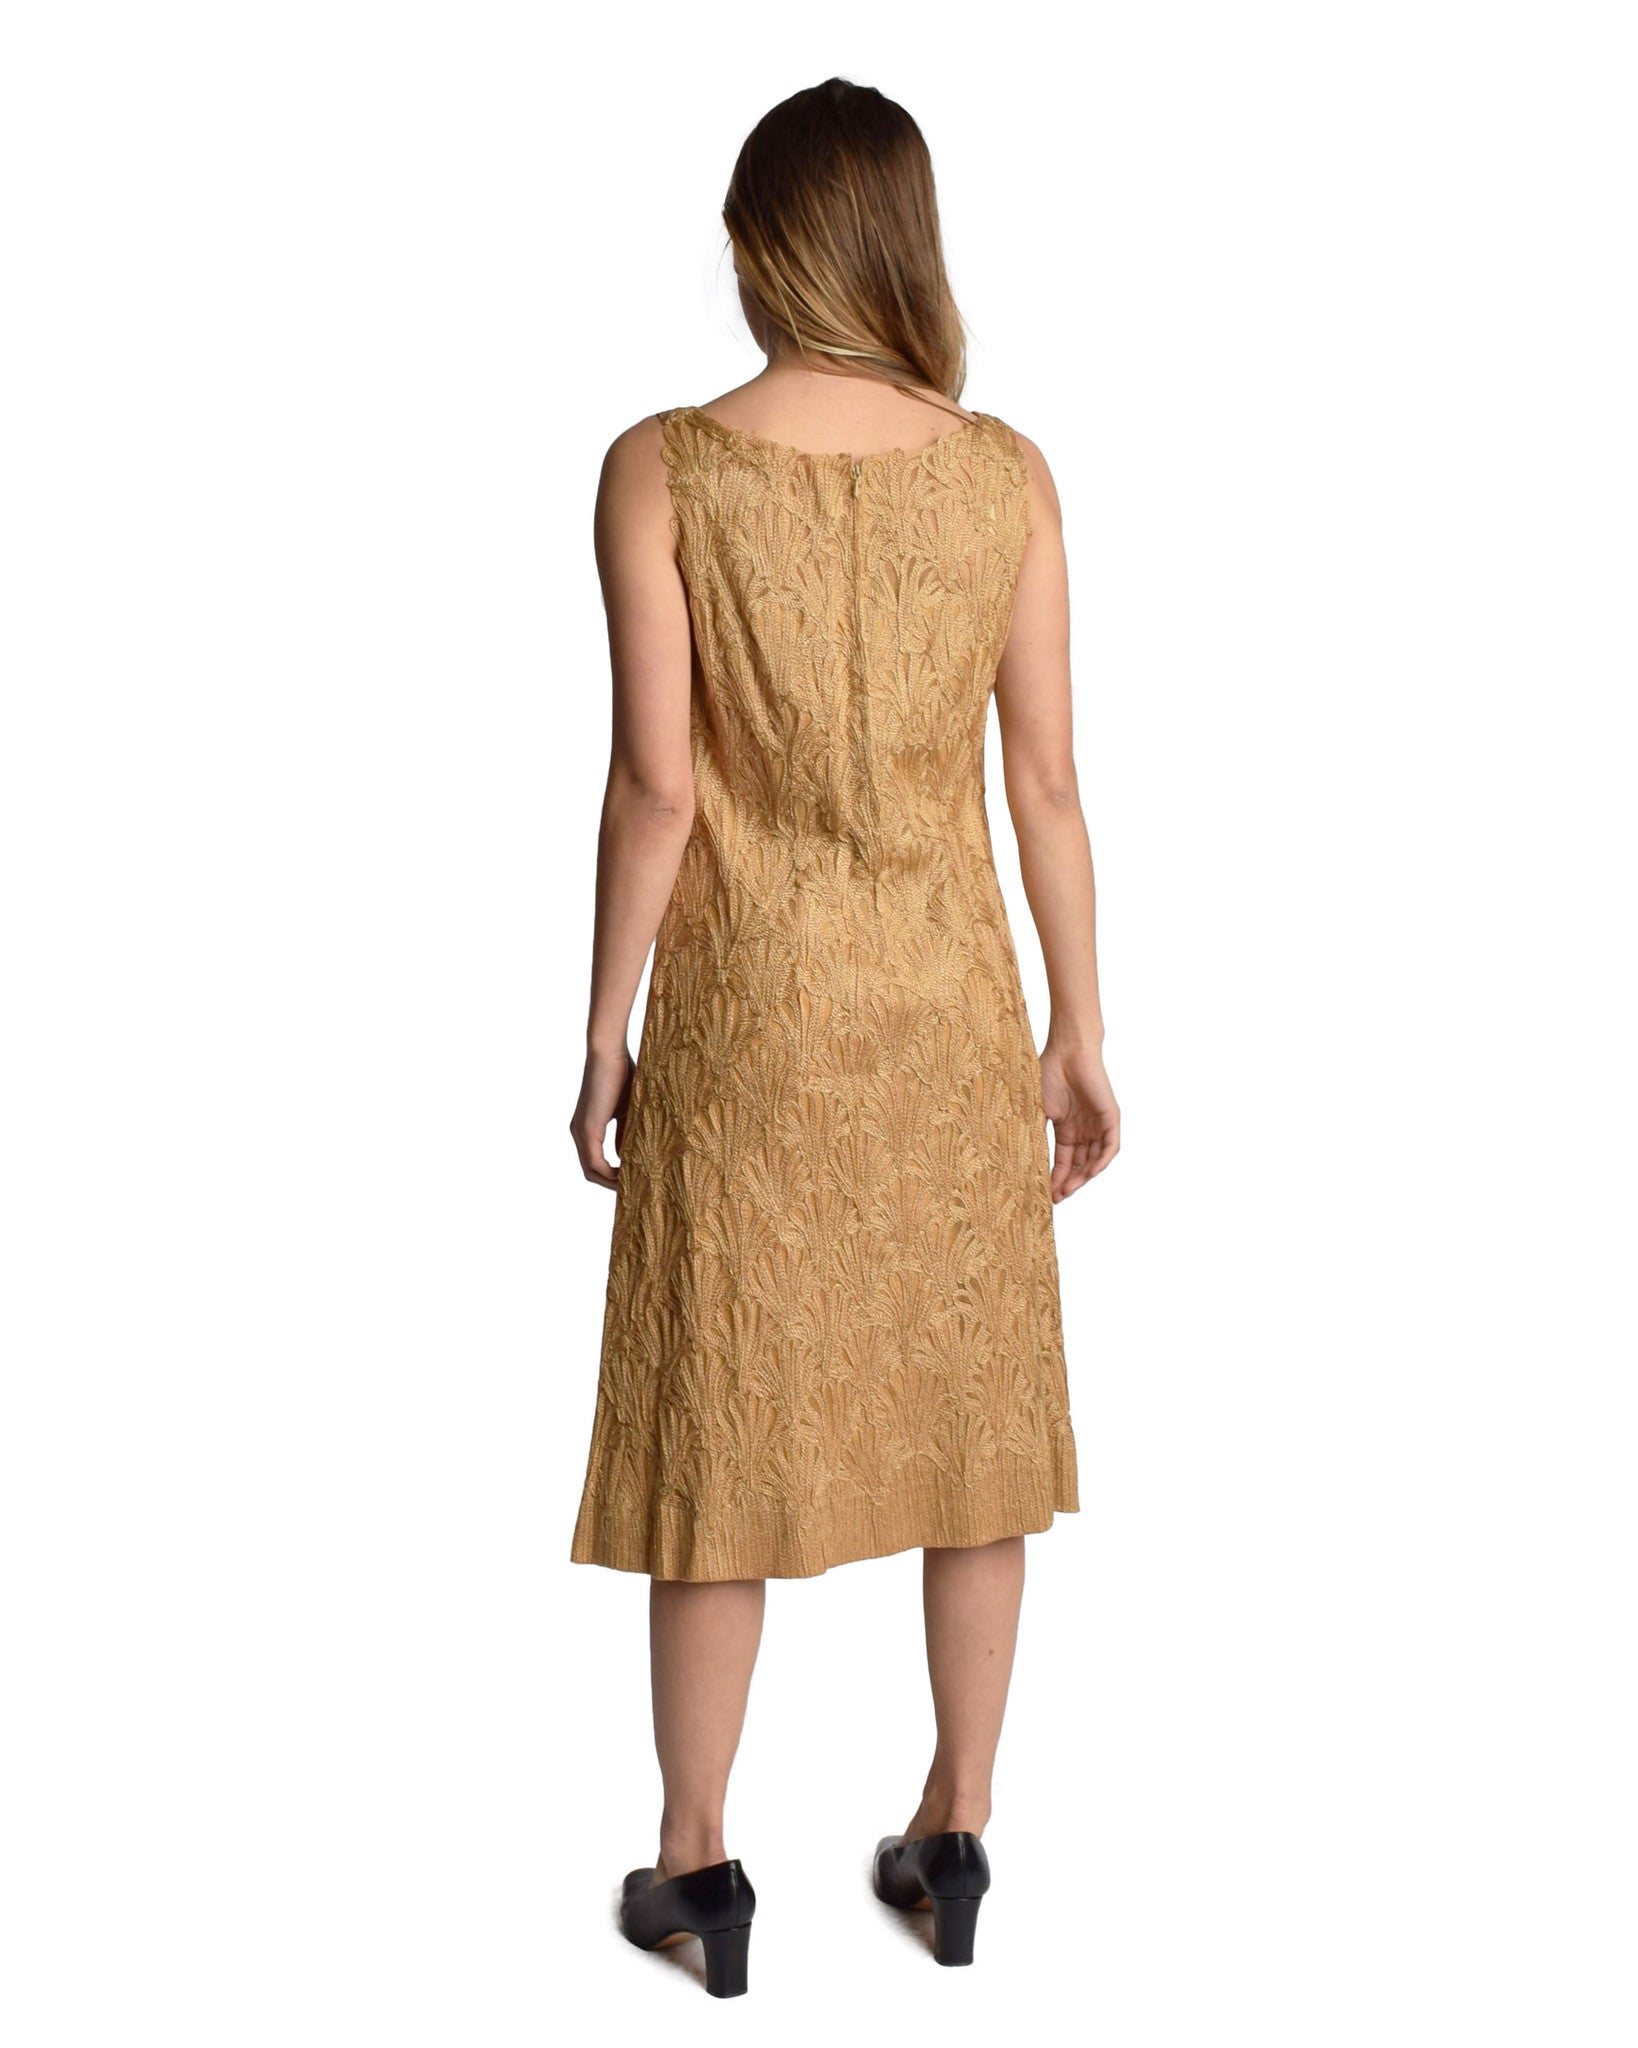 Vintage 1960s Gold Lace Sheath Dress